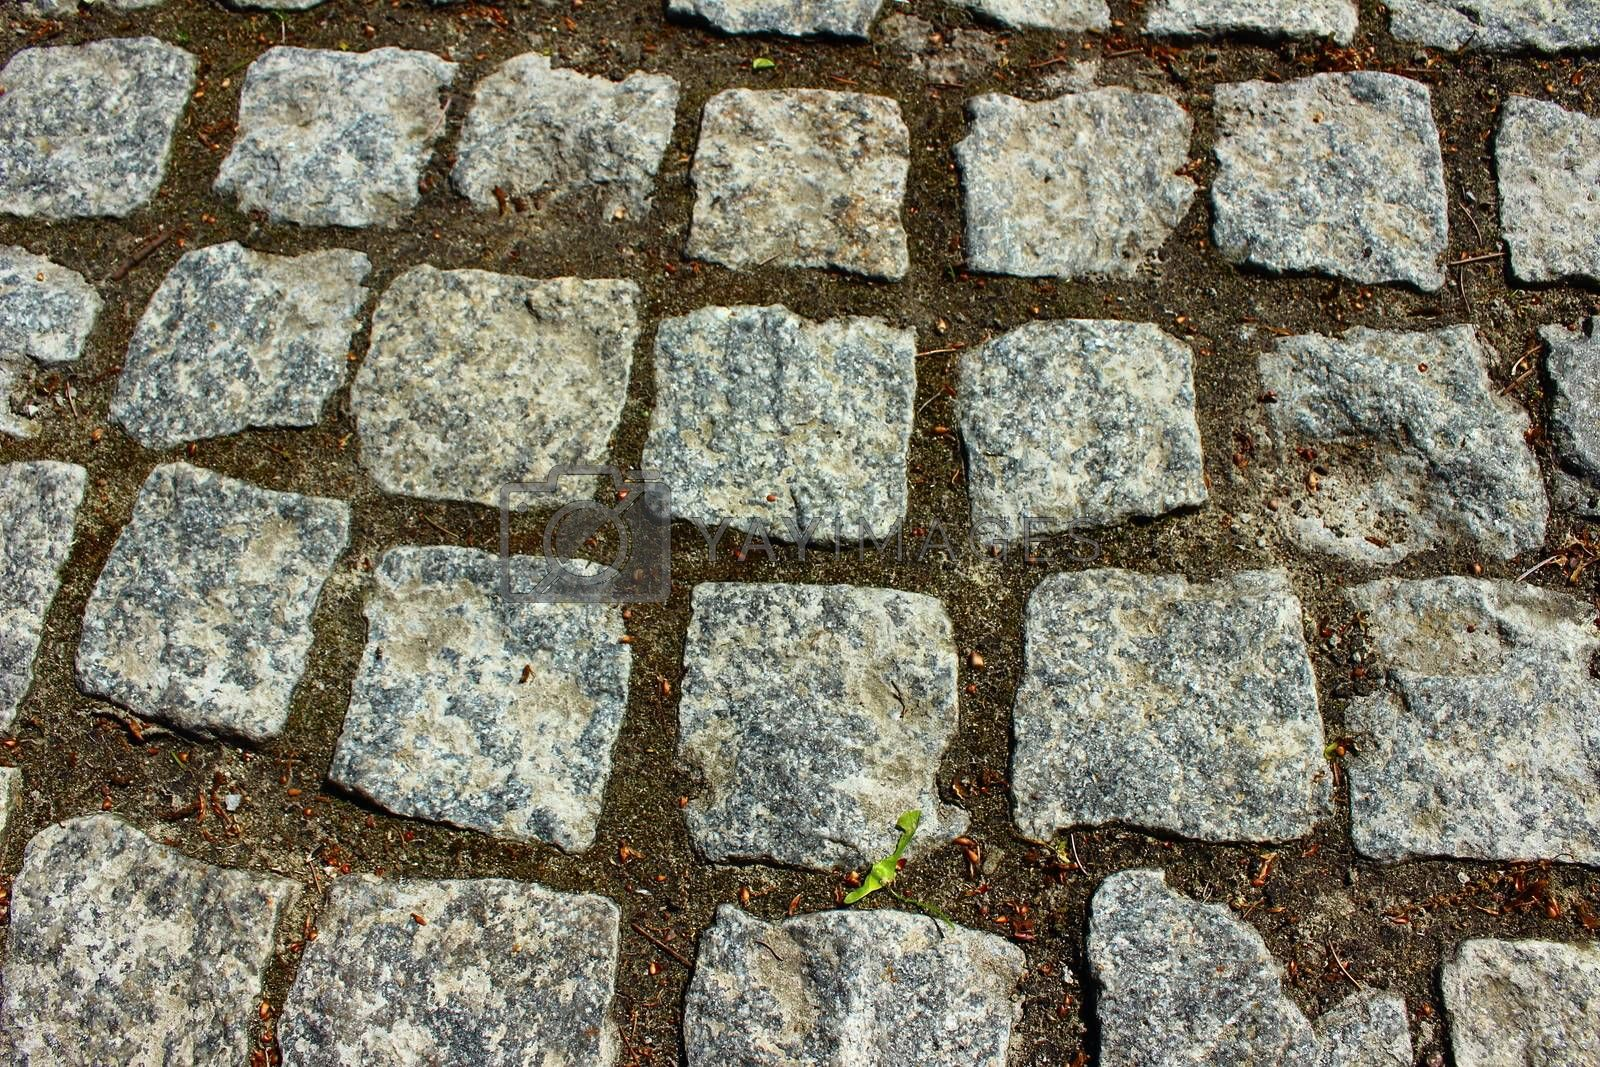 path of square stones between which the earth and moss